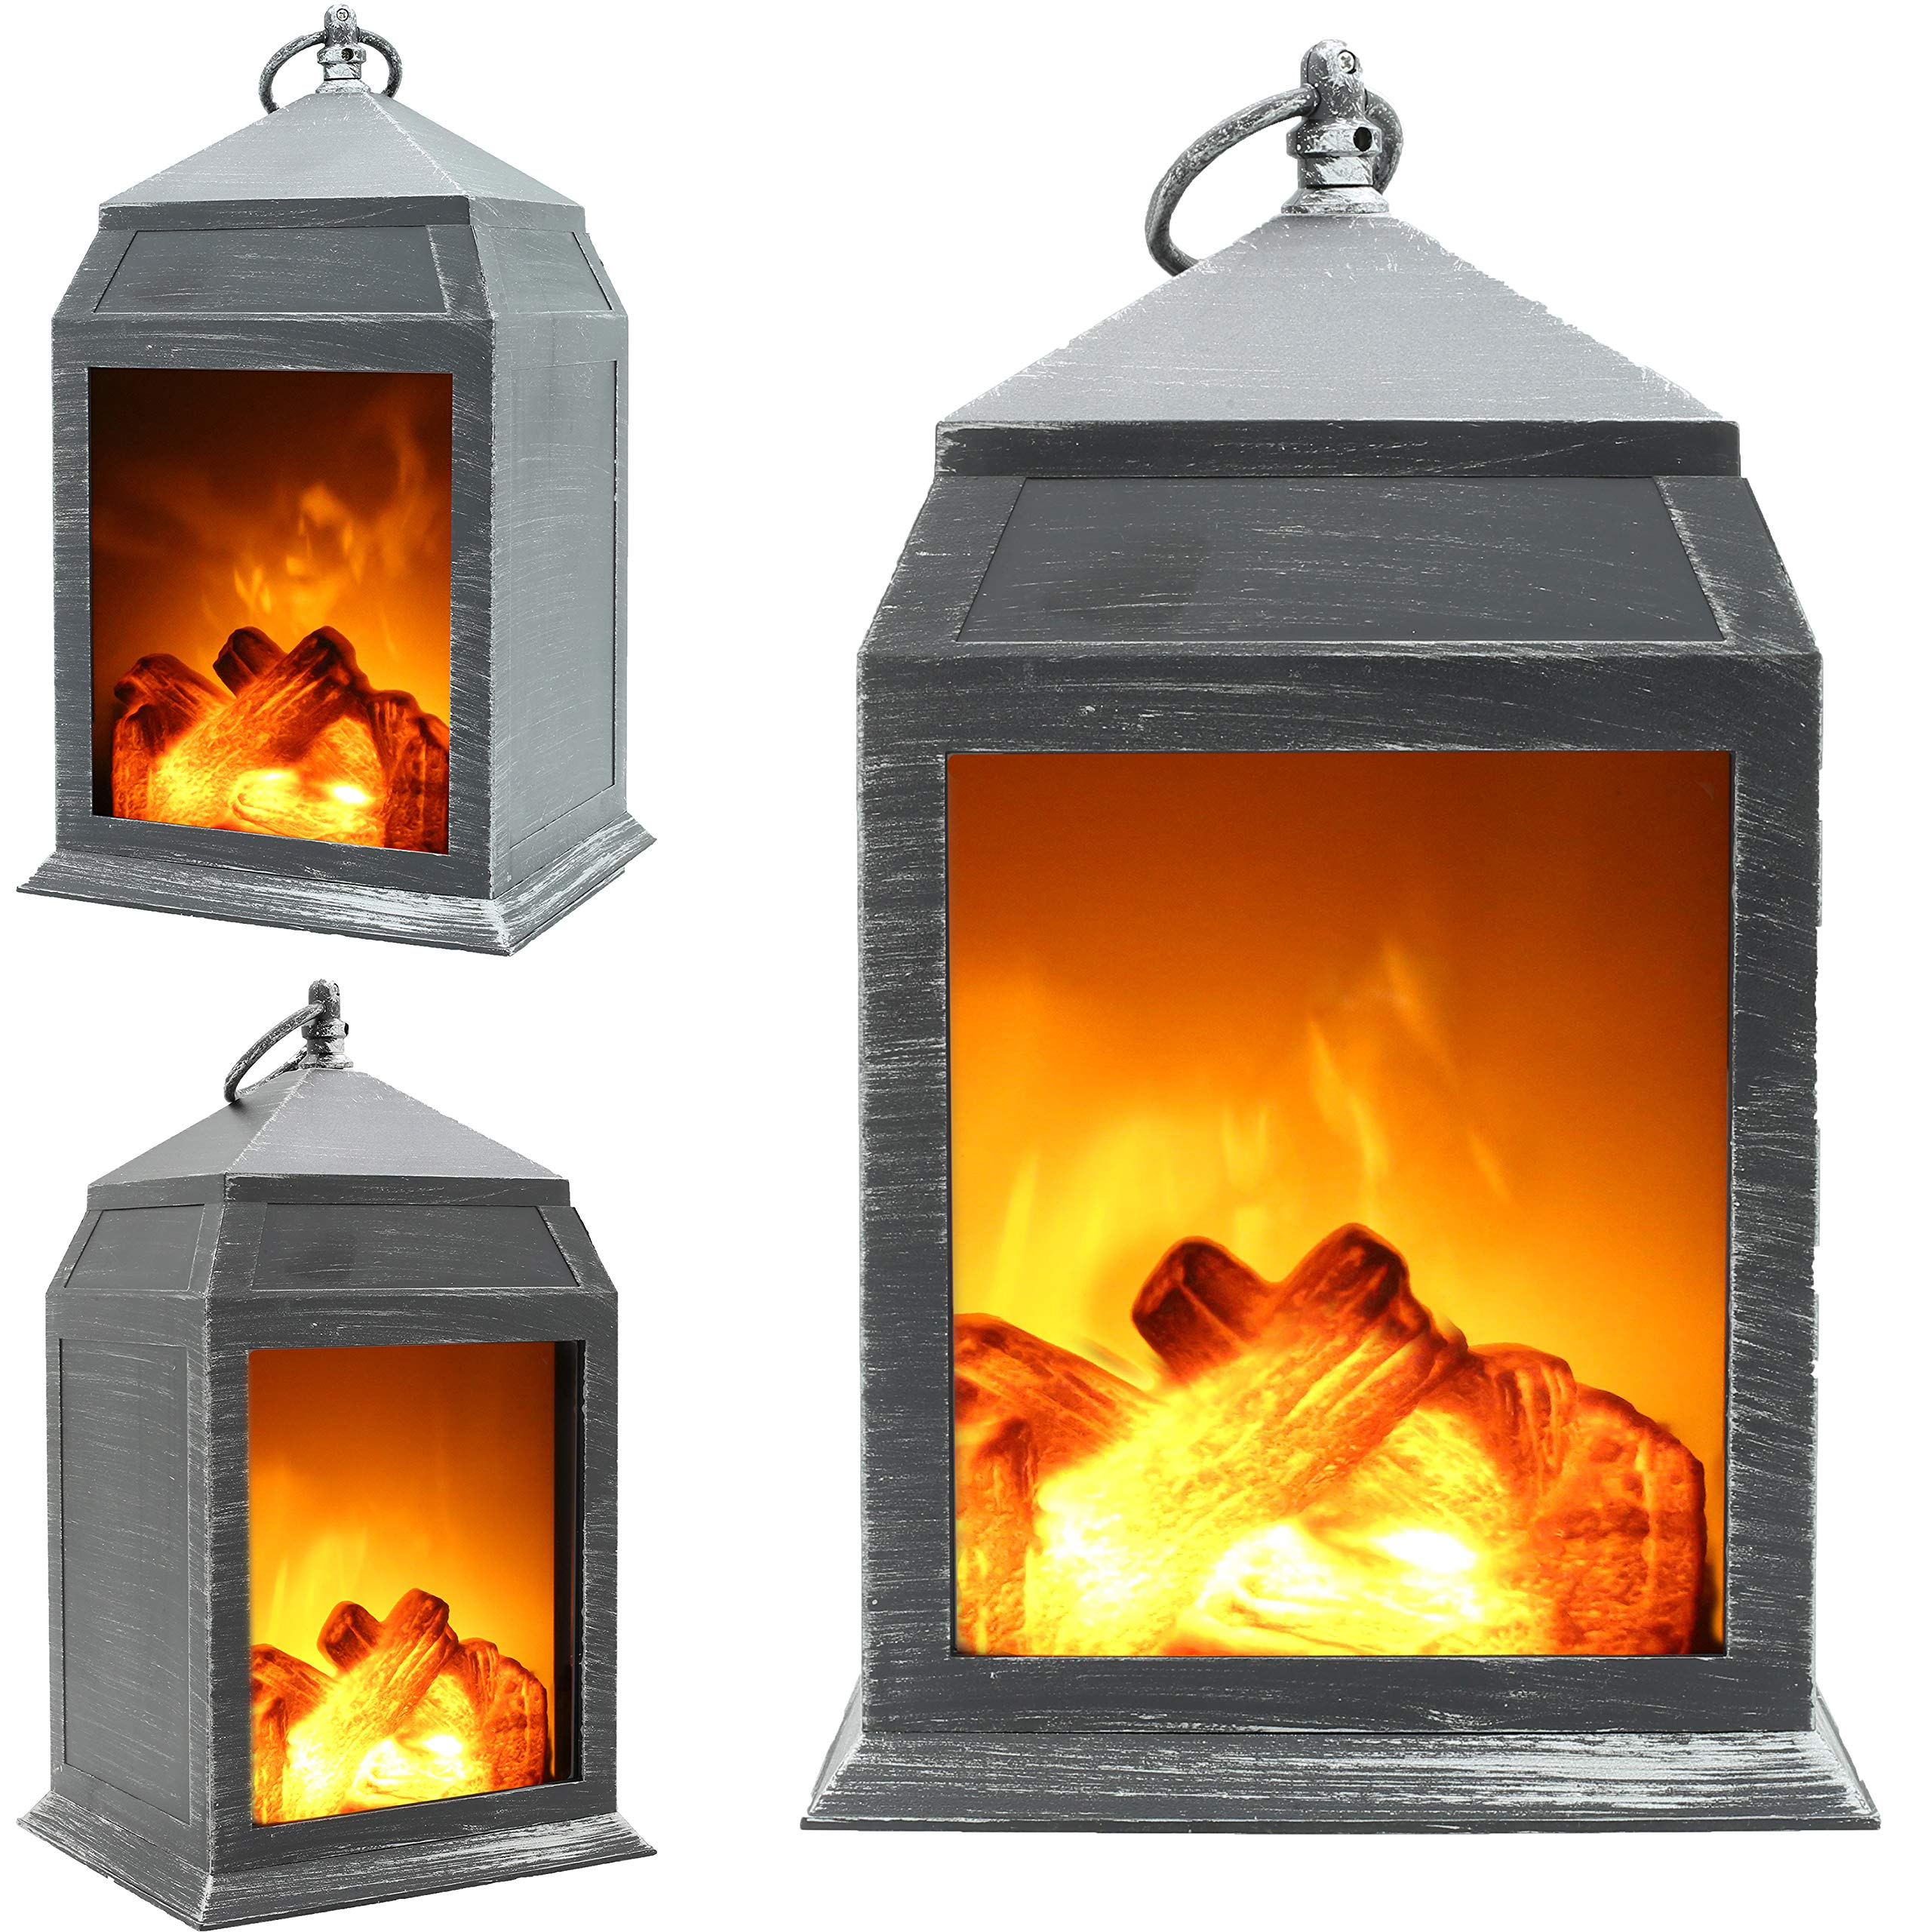 Fireplace Lamp Led Flame Effect Log Fire Place Ornaments Home Decor